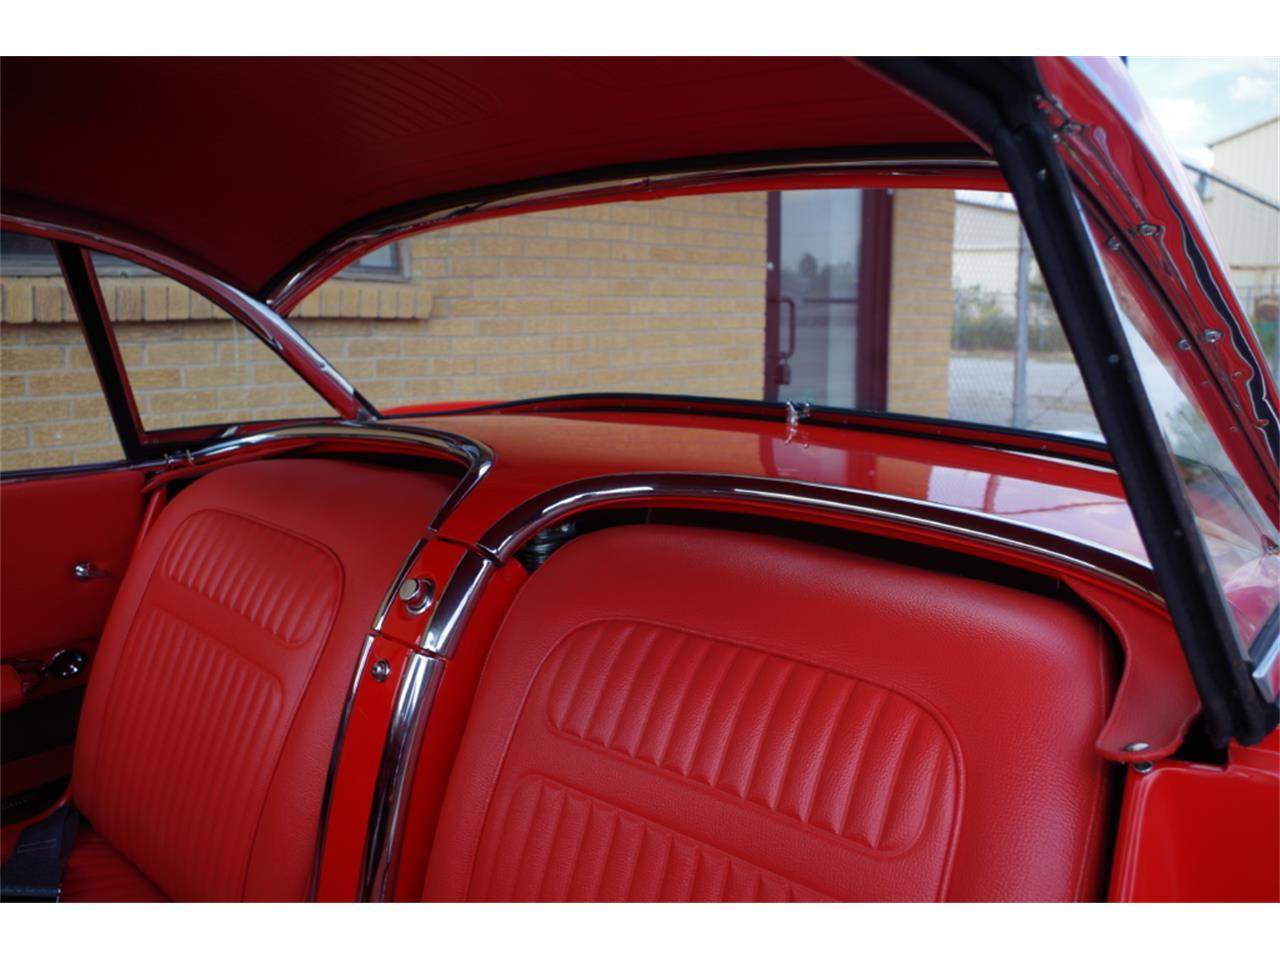 Large Picture of Classic 1958 Chevrolet Corvette located in Missouri - $139,900.00 Offered by Vintage Vettes, LLC - R23F